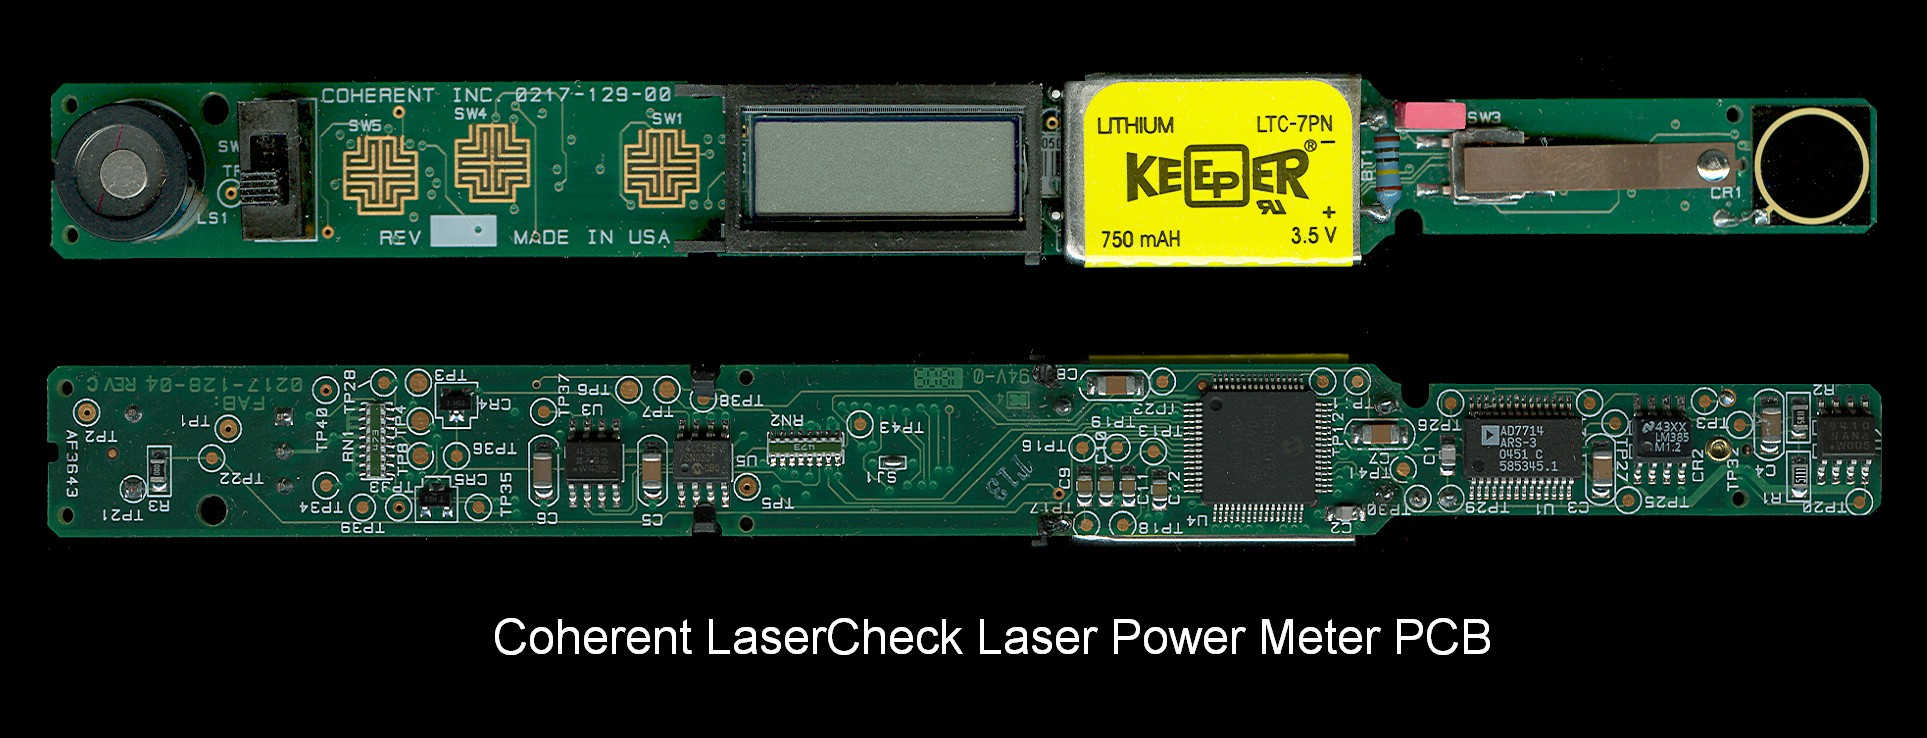 coherent lasercheck laser power meter pcb (clcpcb1 jpg)